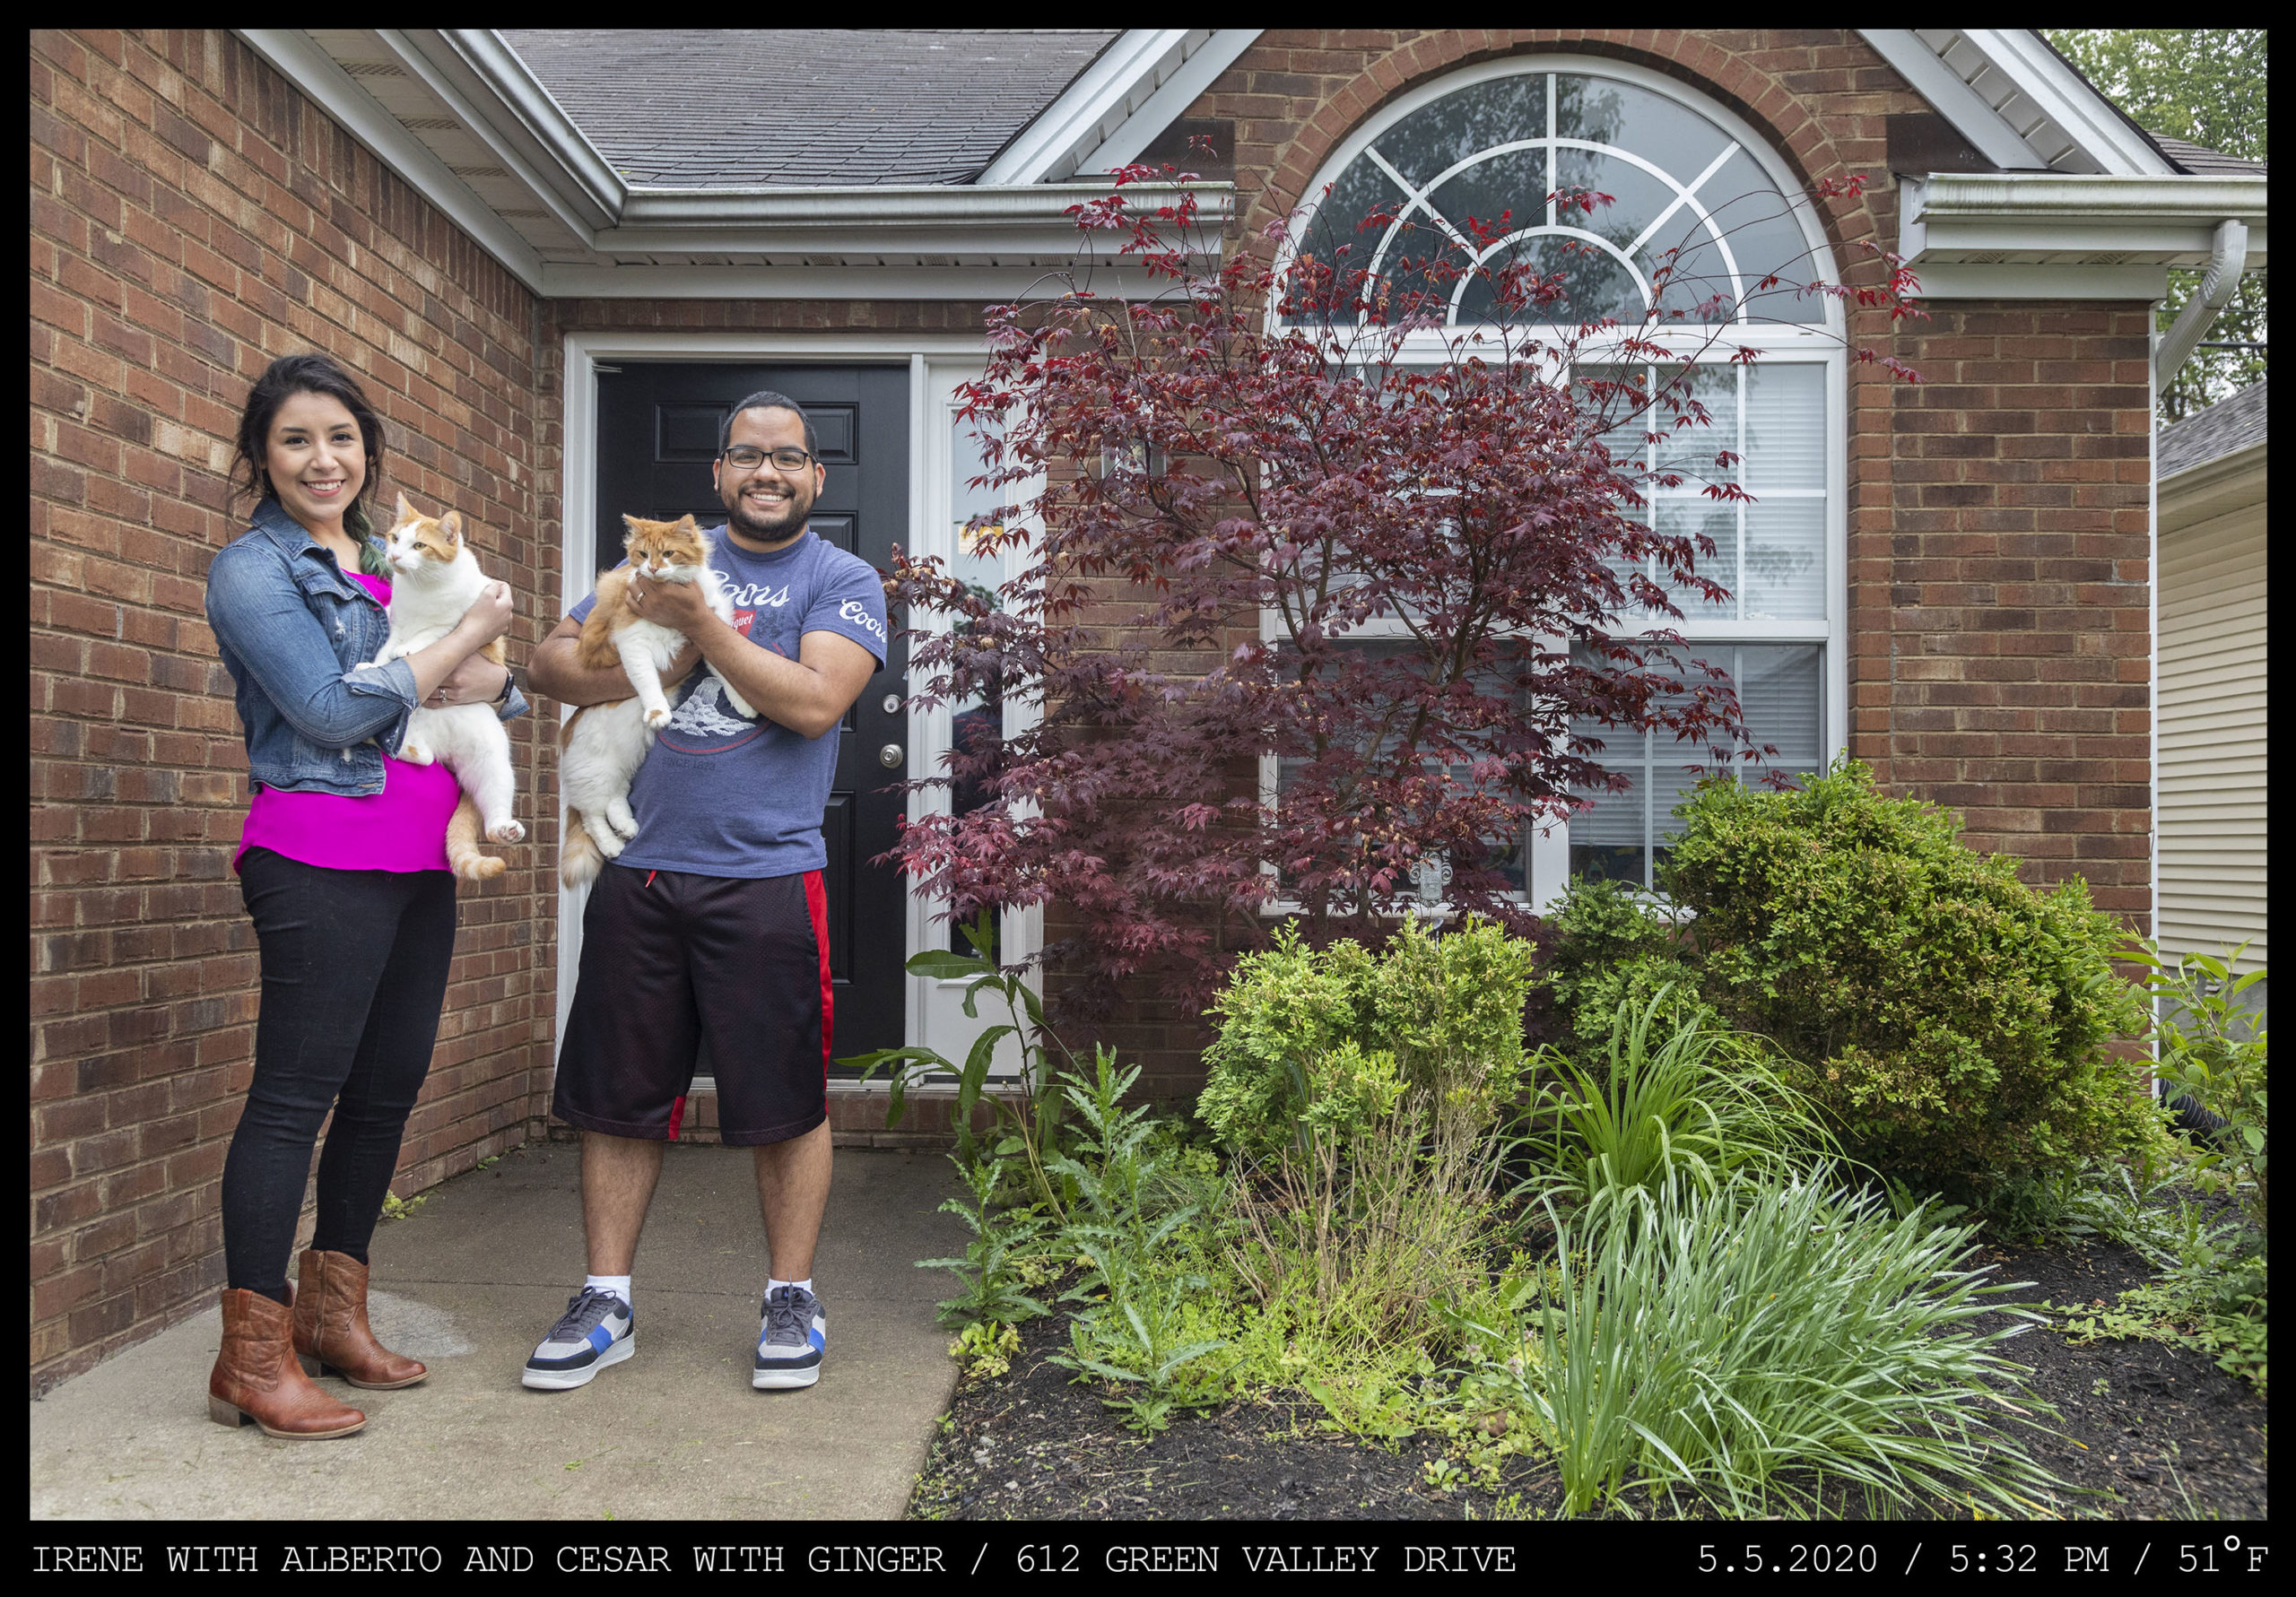 Two people hold cats: a woman with a neon pink shirt and a denim jacket stands next to a man in a Coors tee shirt at the front entryway of a brick home with a white framed arched window.